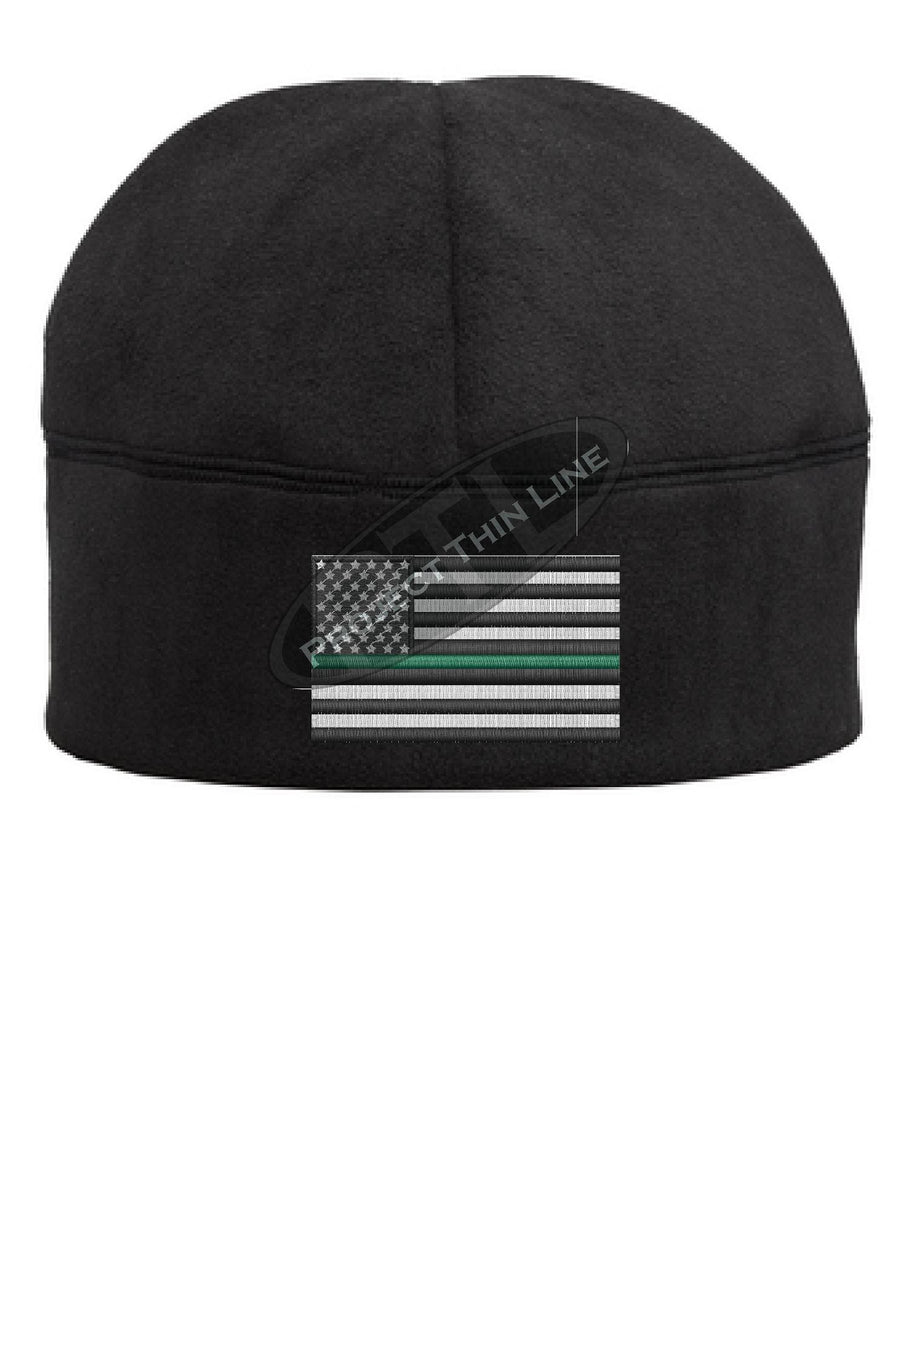 Thin GREEN Line Flag Fleece Beanie